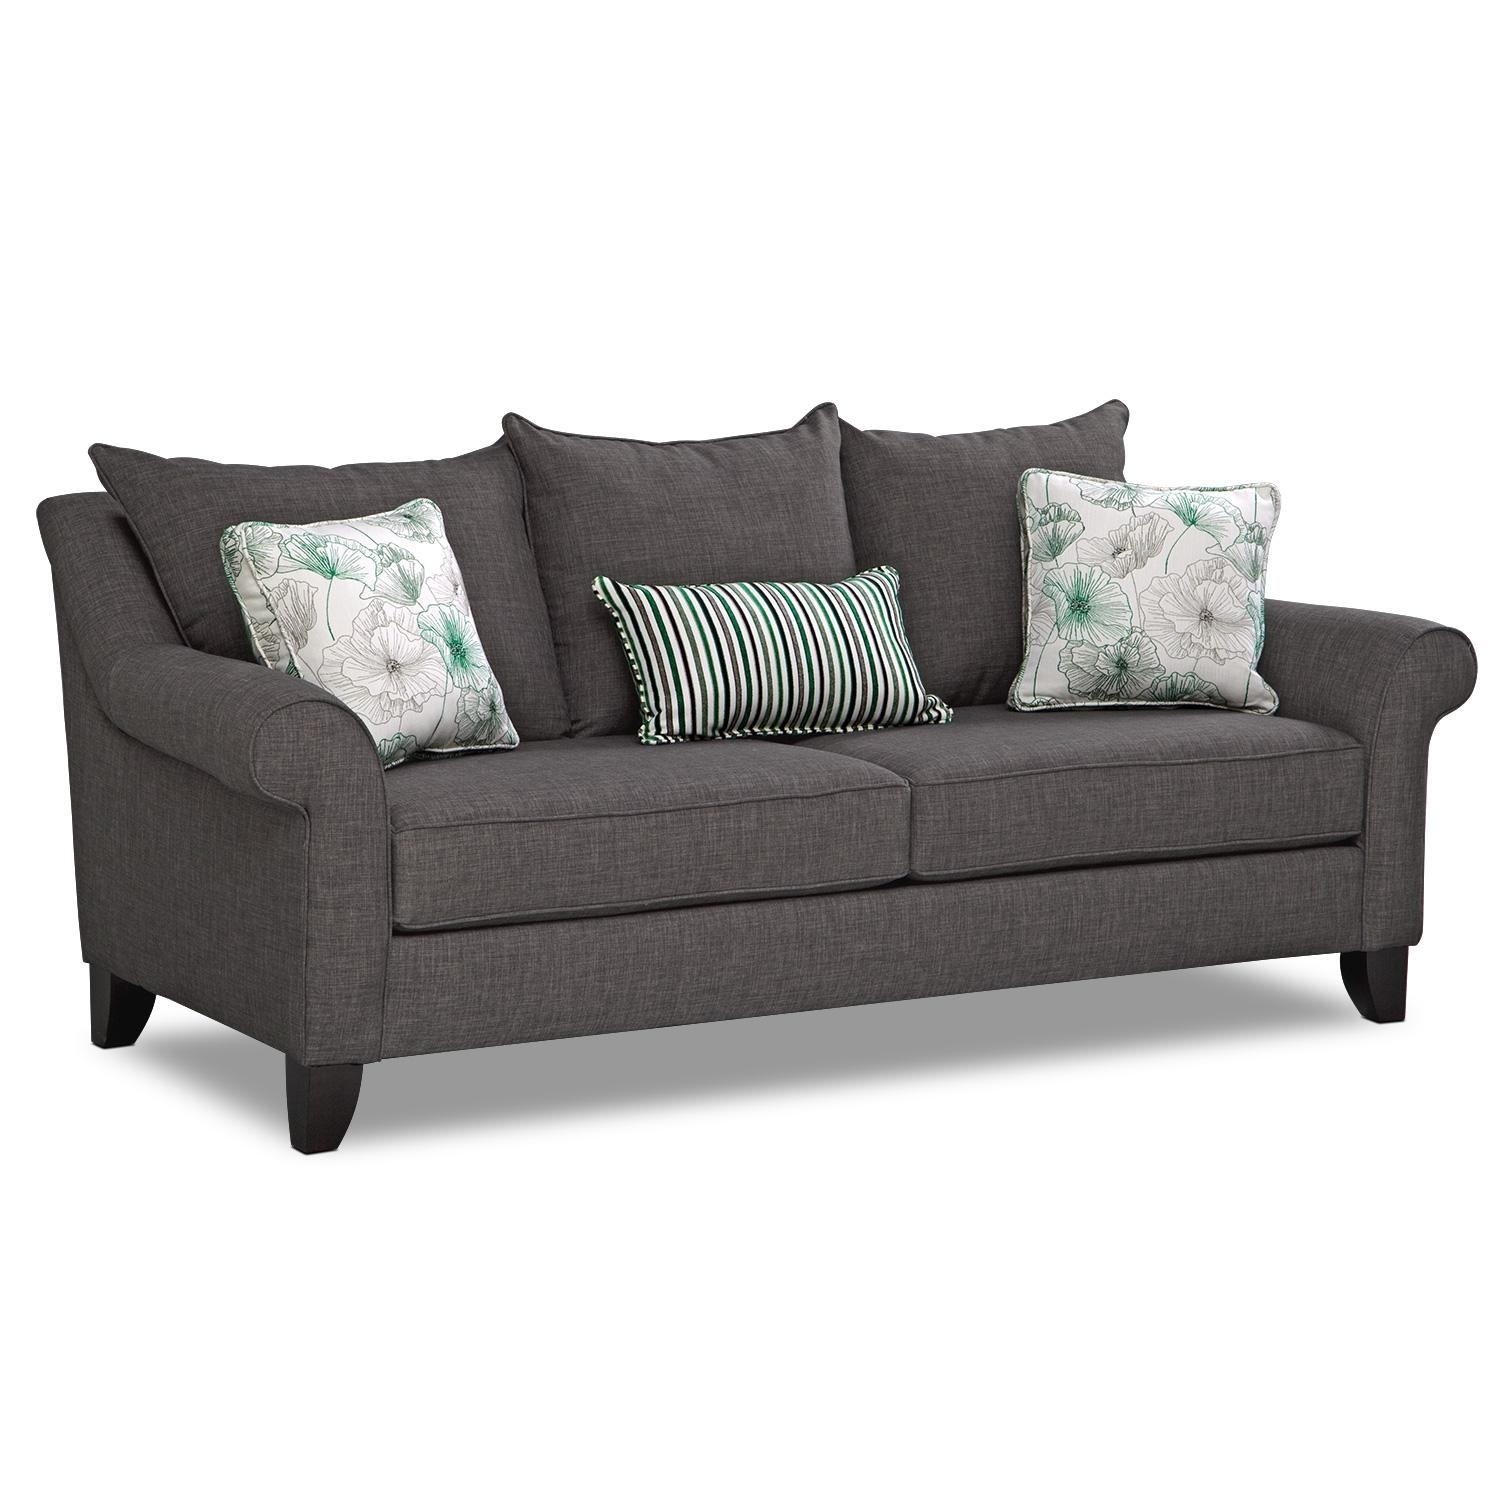 Sofas Center : Brilliant Queen Size Sofa Sleeper Best Living Room Pertaining To Sofa Sleepers Queen Size (View 14 of 20)